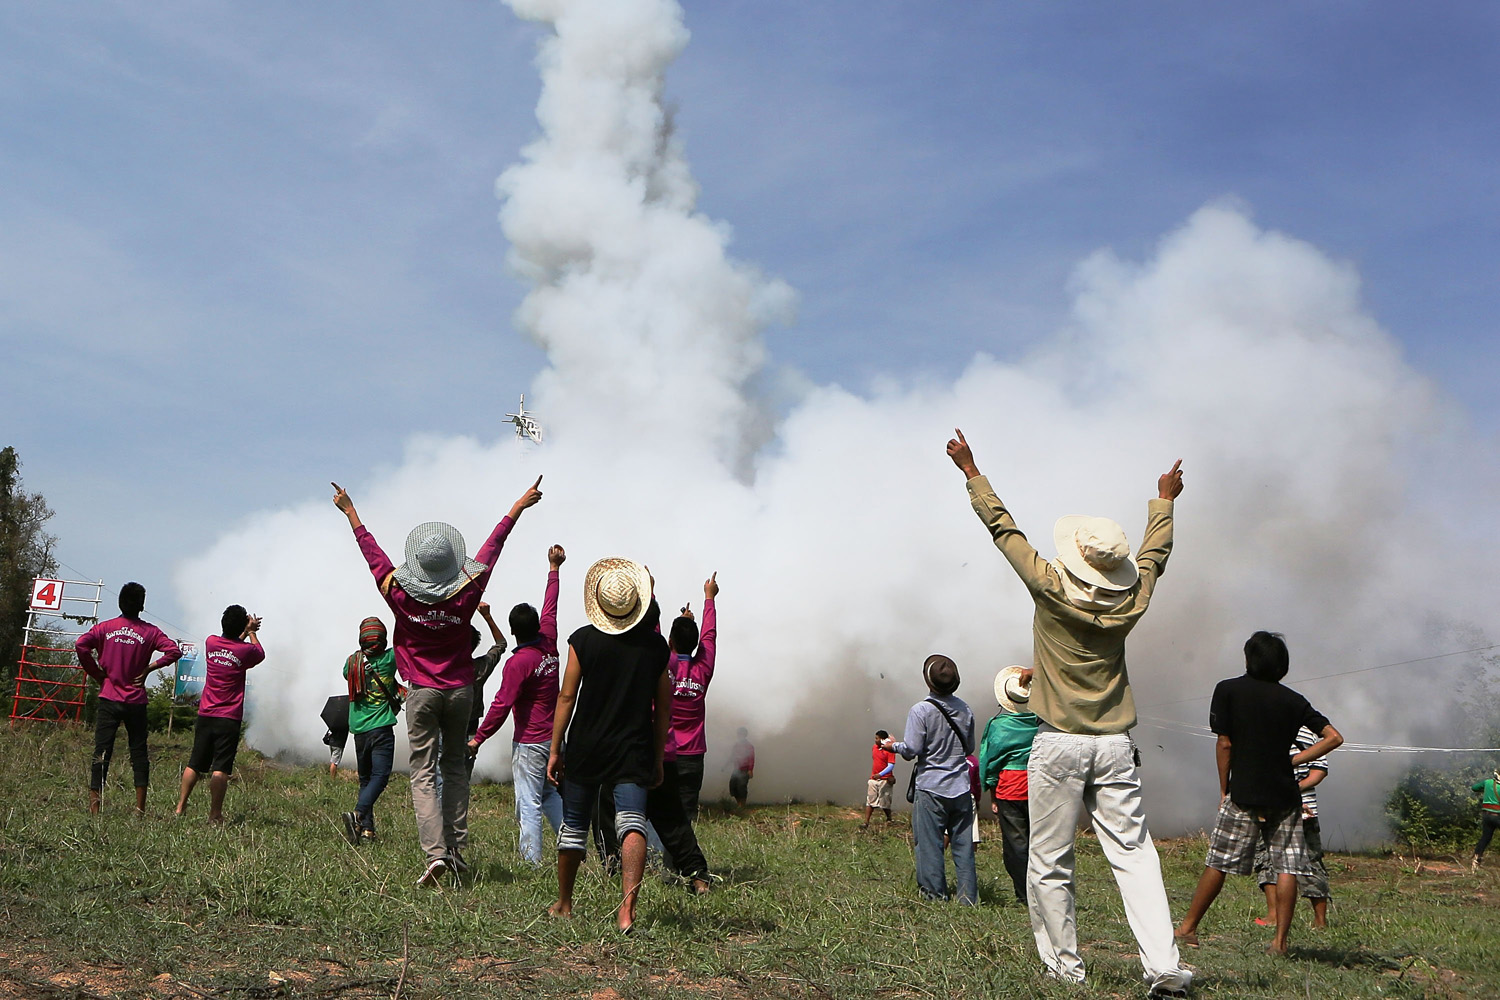 Thai men react to a particularly well-launched rocket during the Bun Bang Fai festival on May 11, 2014 in Yasothon, Thailand.